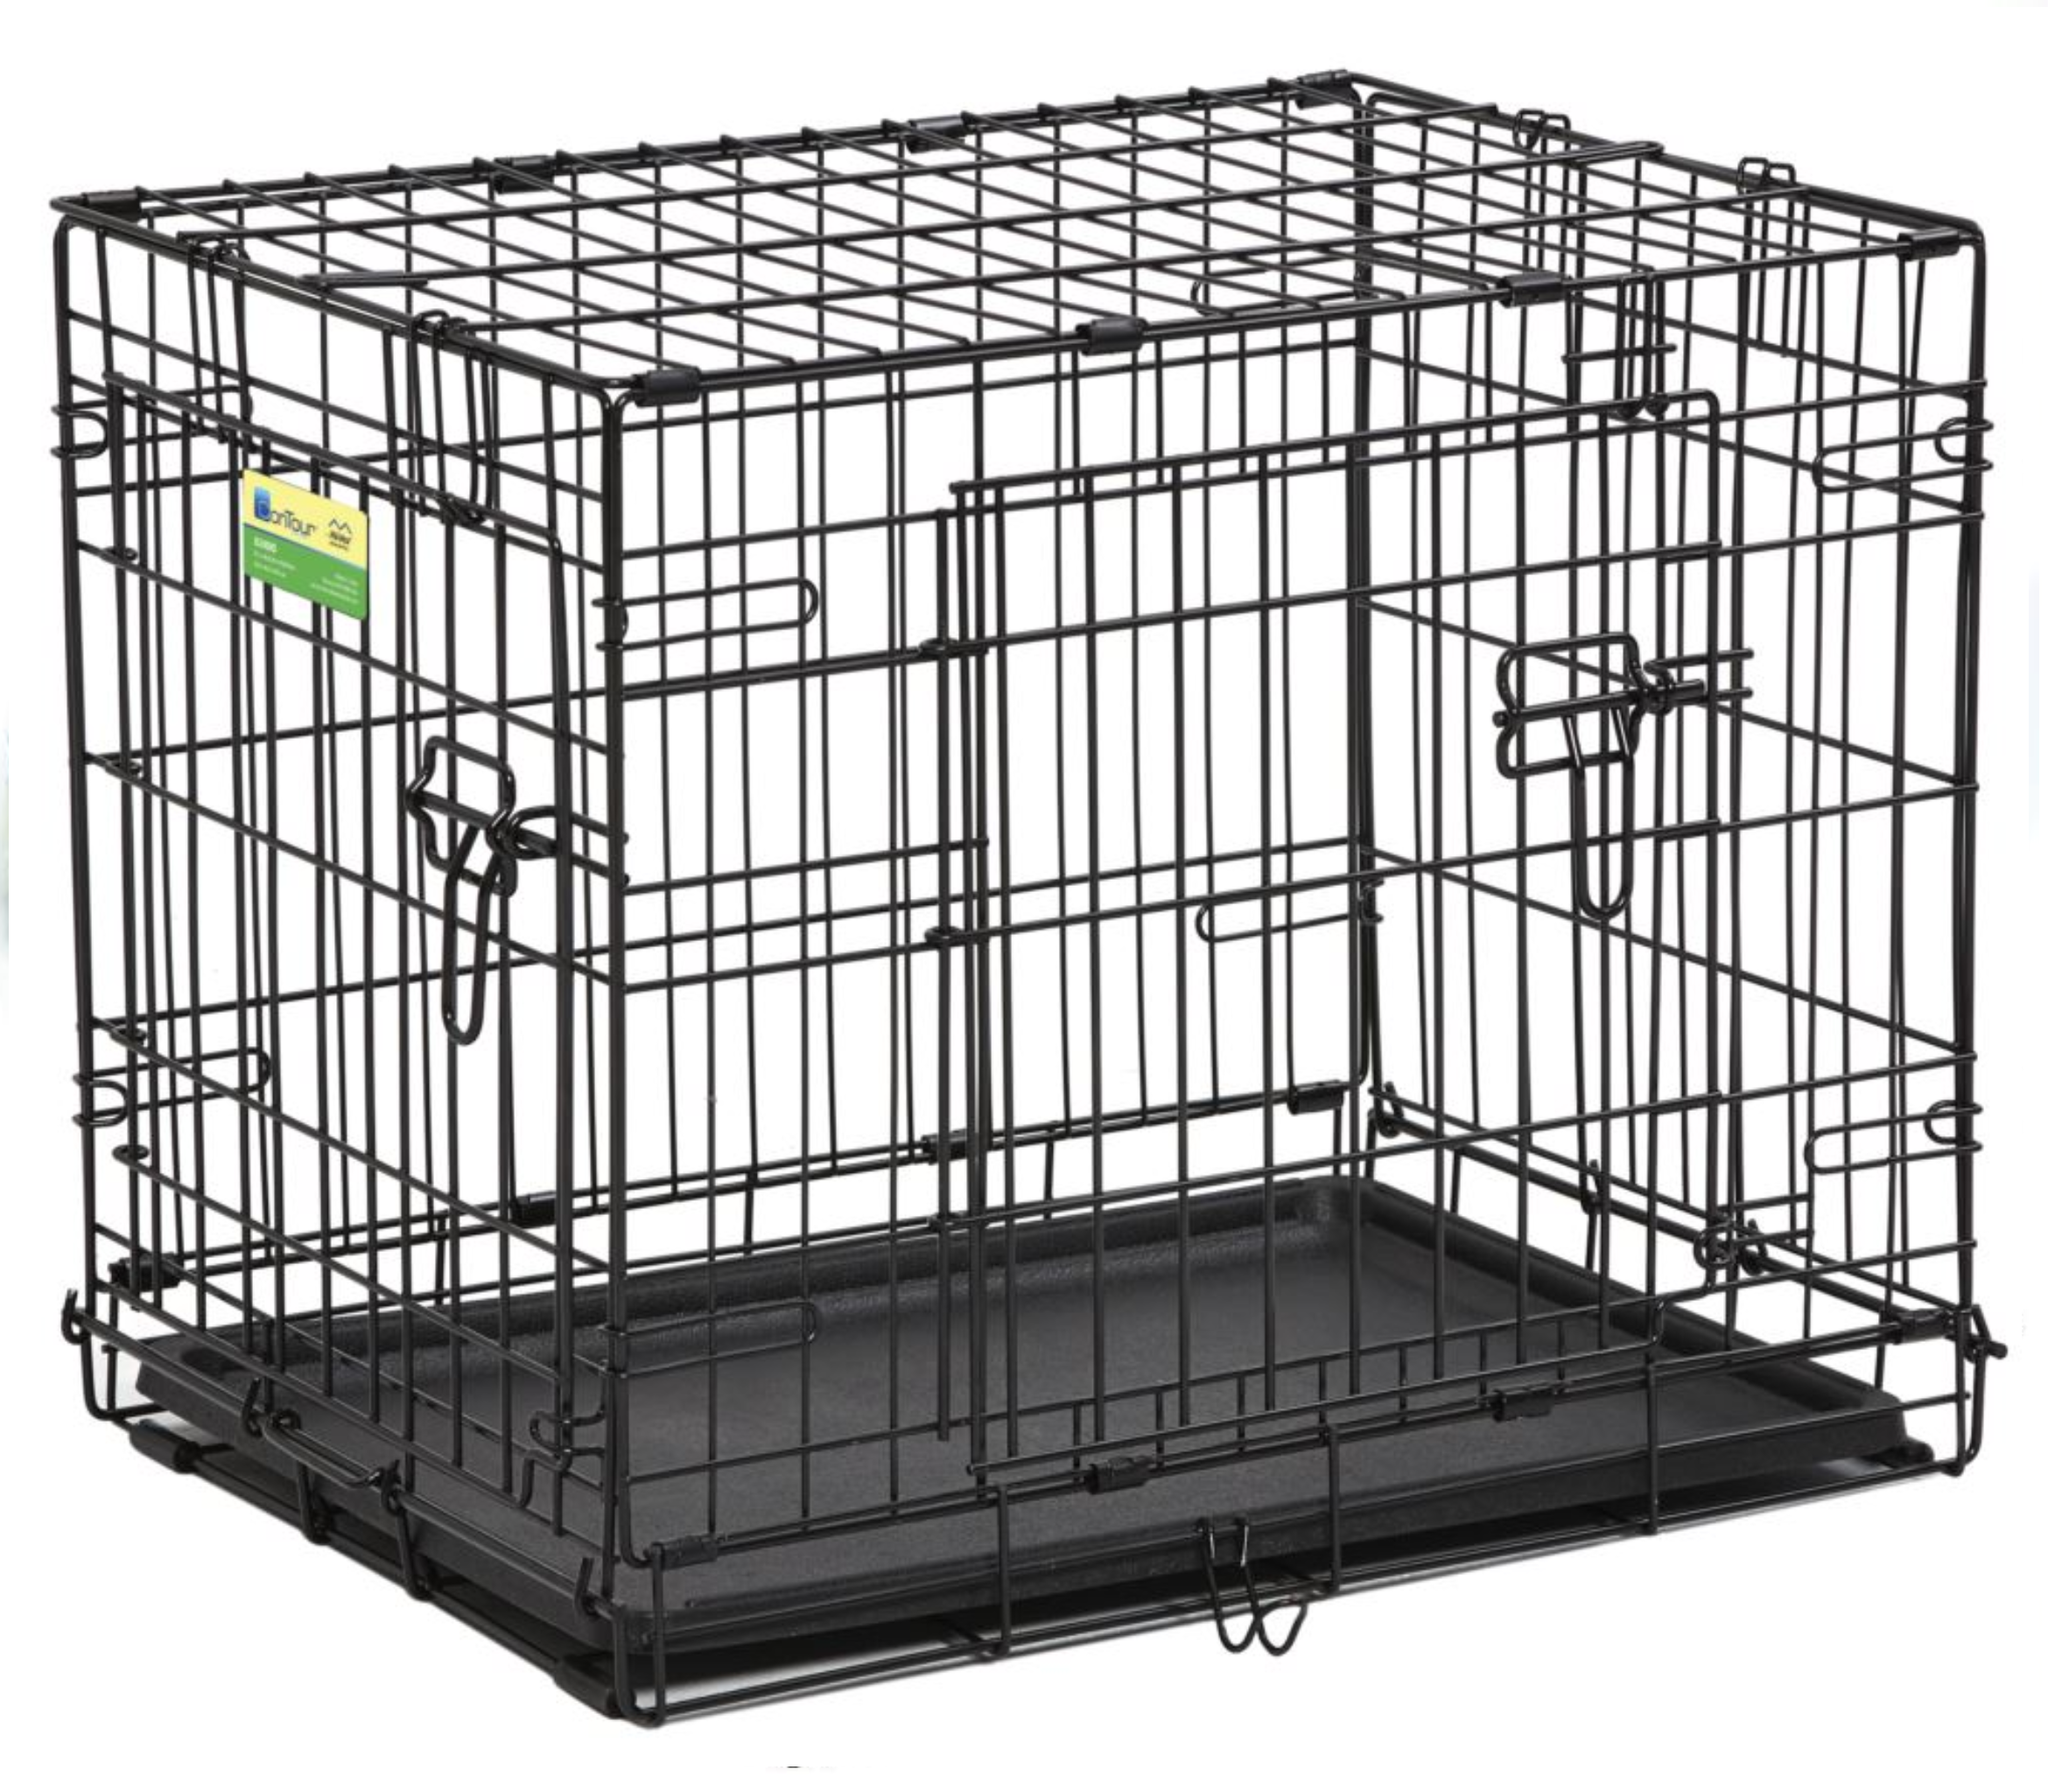 MIDWEST CONTAINER CONTOUR 2-DR CRATE 24X18X19